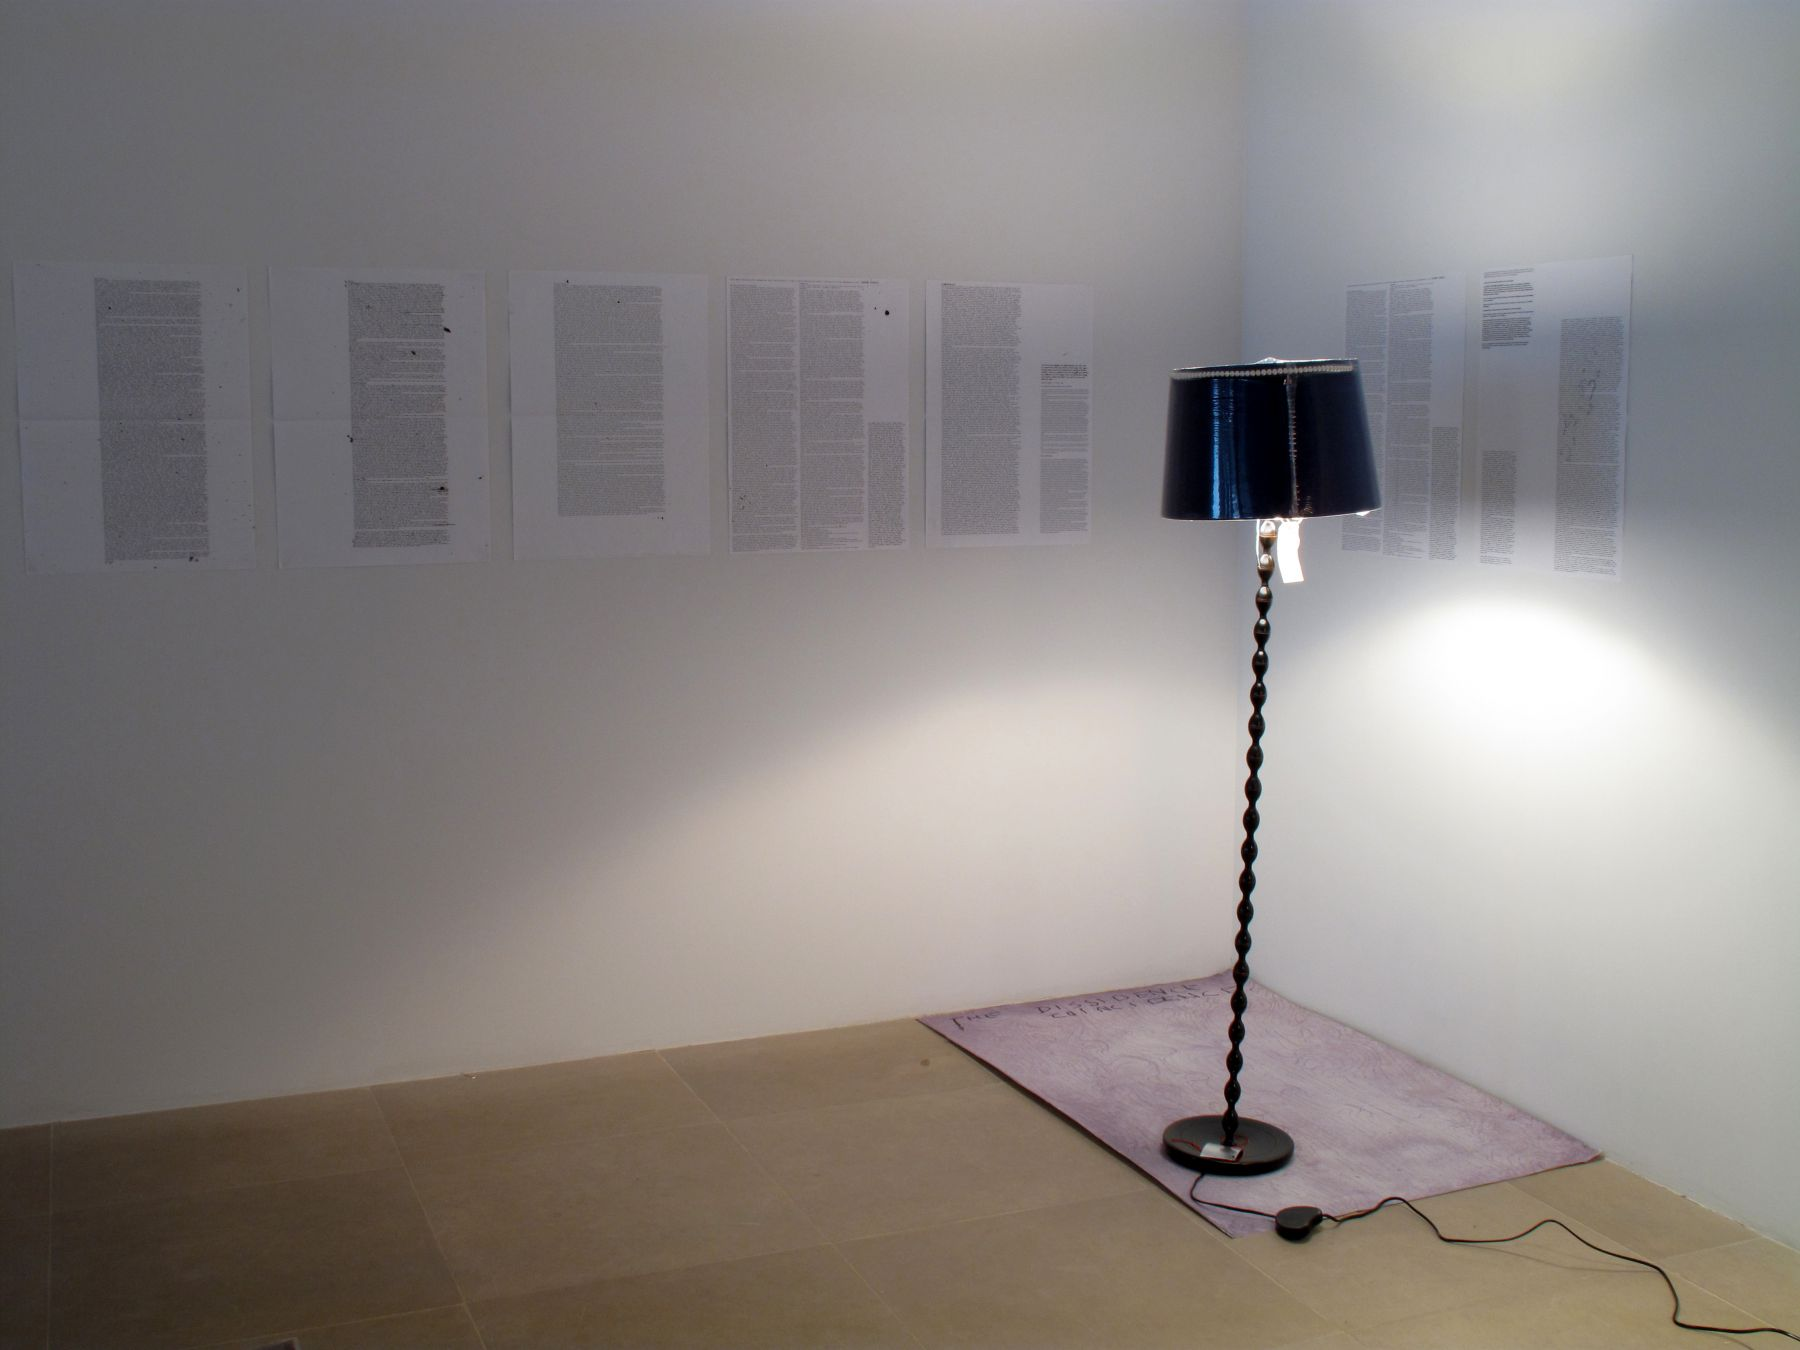 Josef Strau  The Dissidence Coincidence, 2008  Mixed media lamp with inkjet poster  Overall dimensions variable